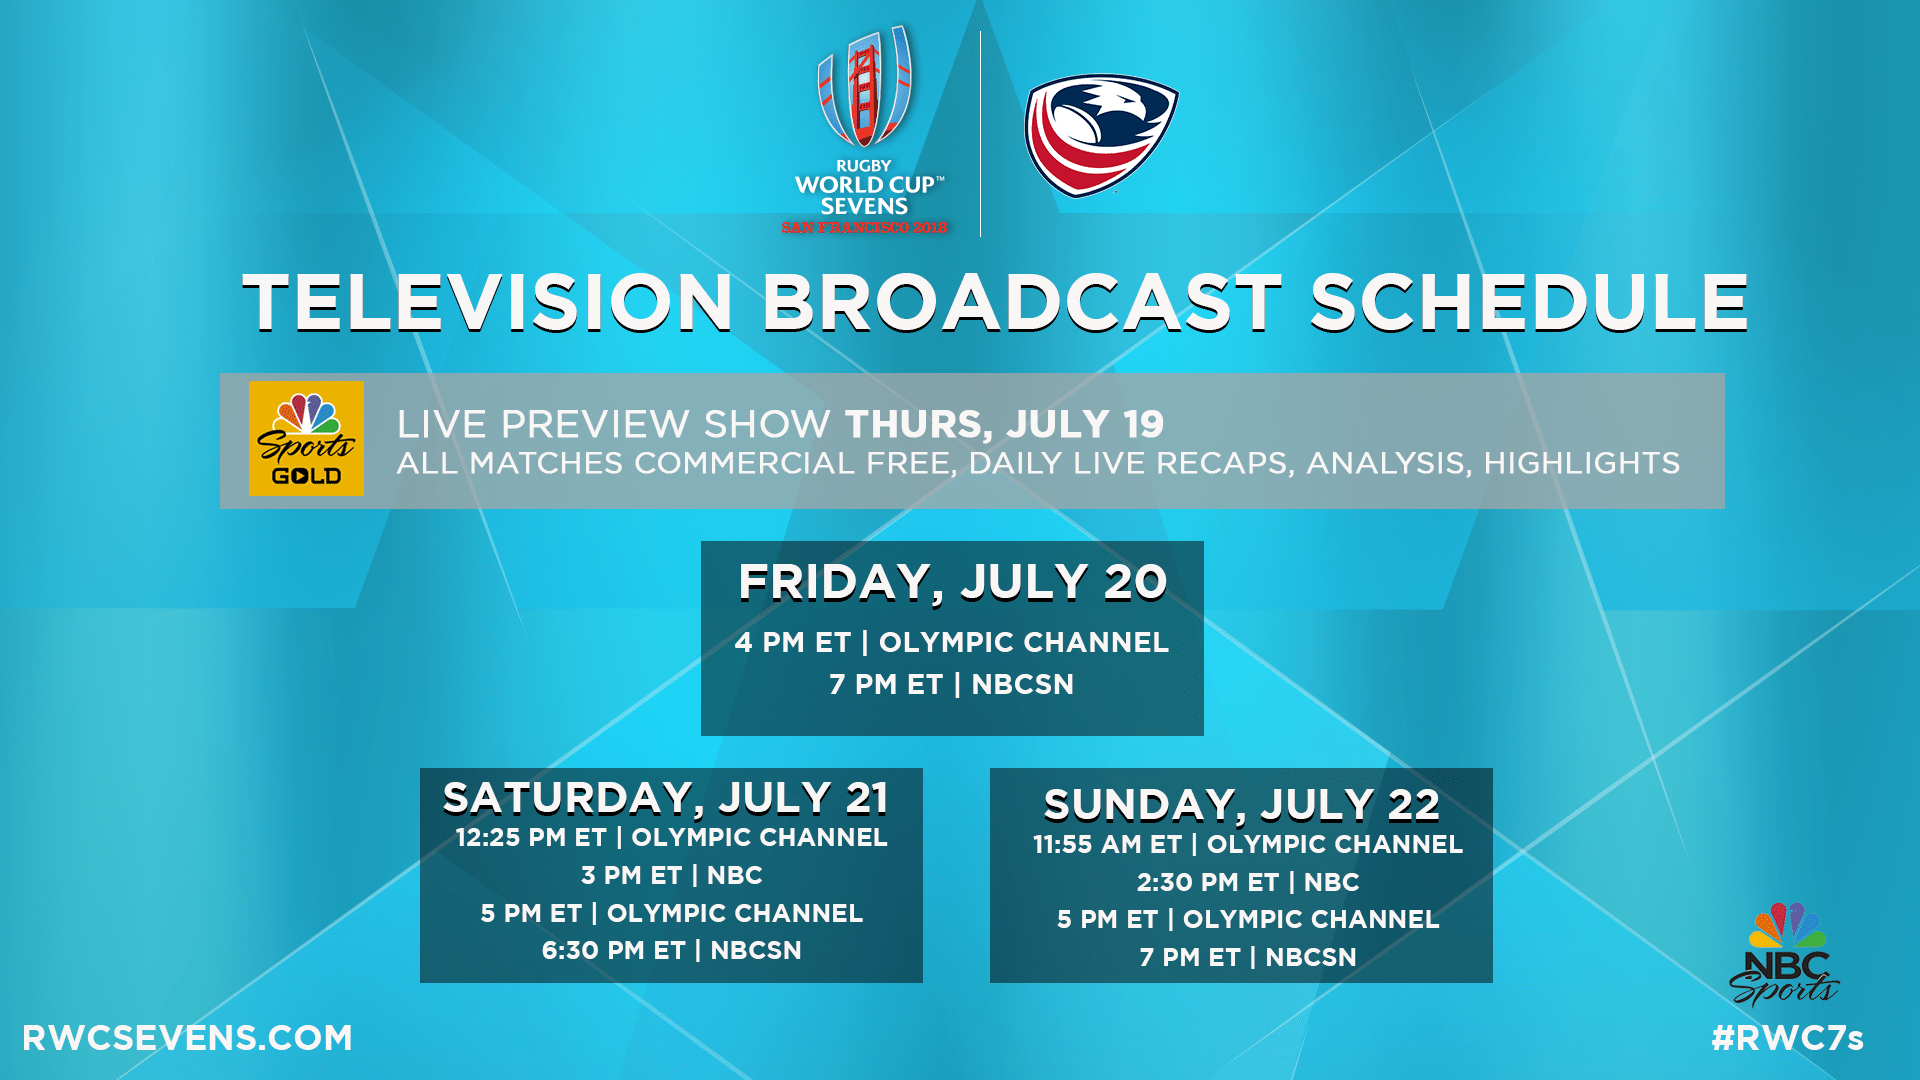 nbc to present comprehensive coverage of 2018 rugby world cup sevens